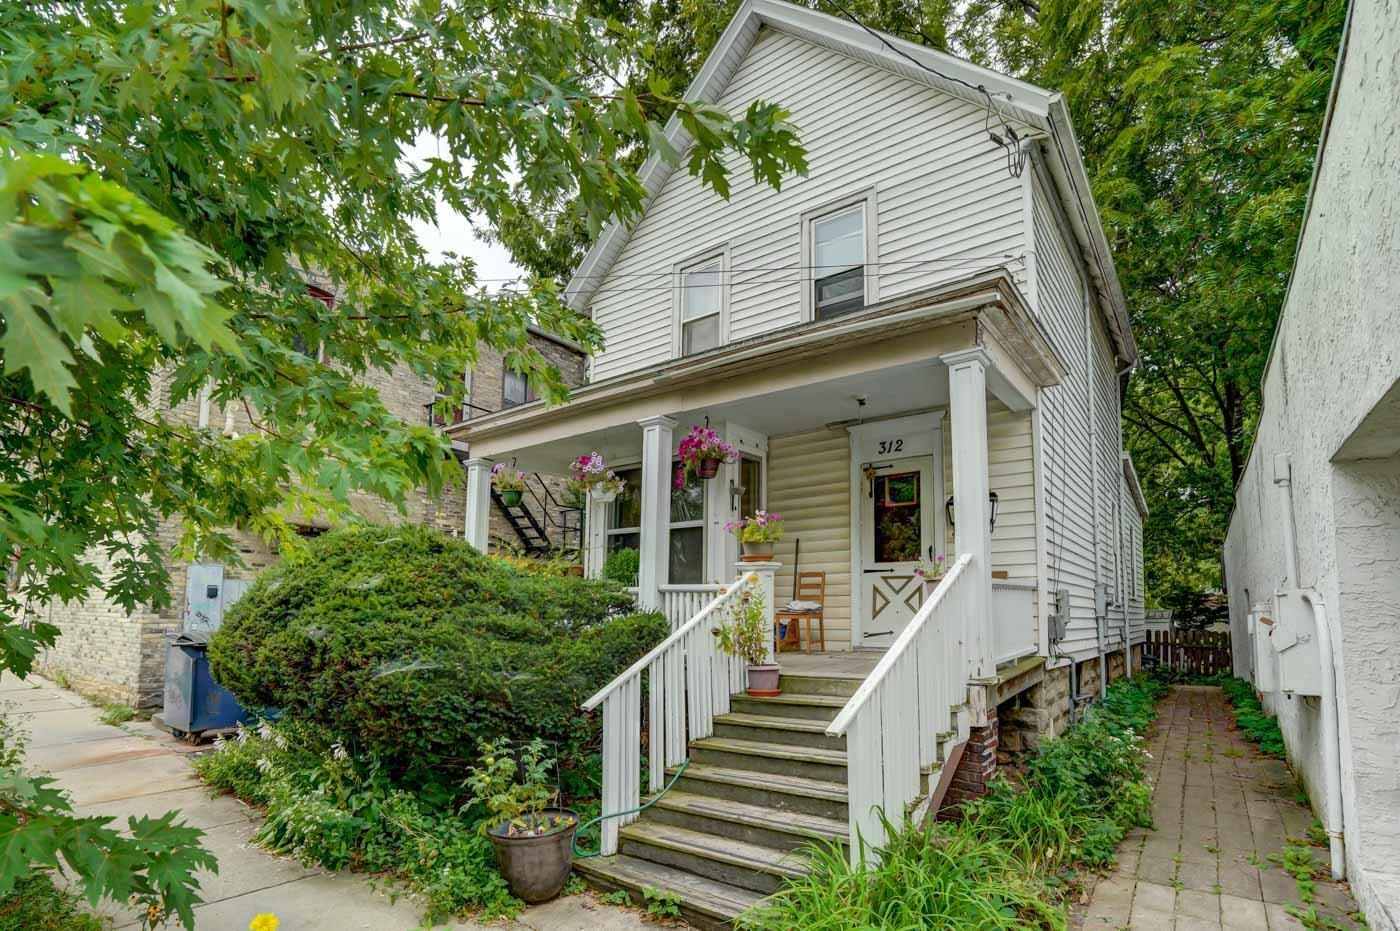 Photo for 312 S Ingersoll St, Madison, WI 53703 (MLS # 1918961)